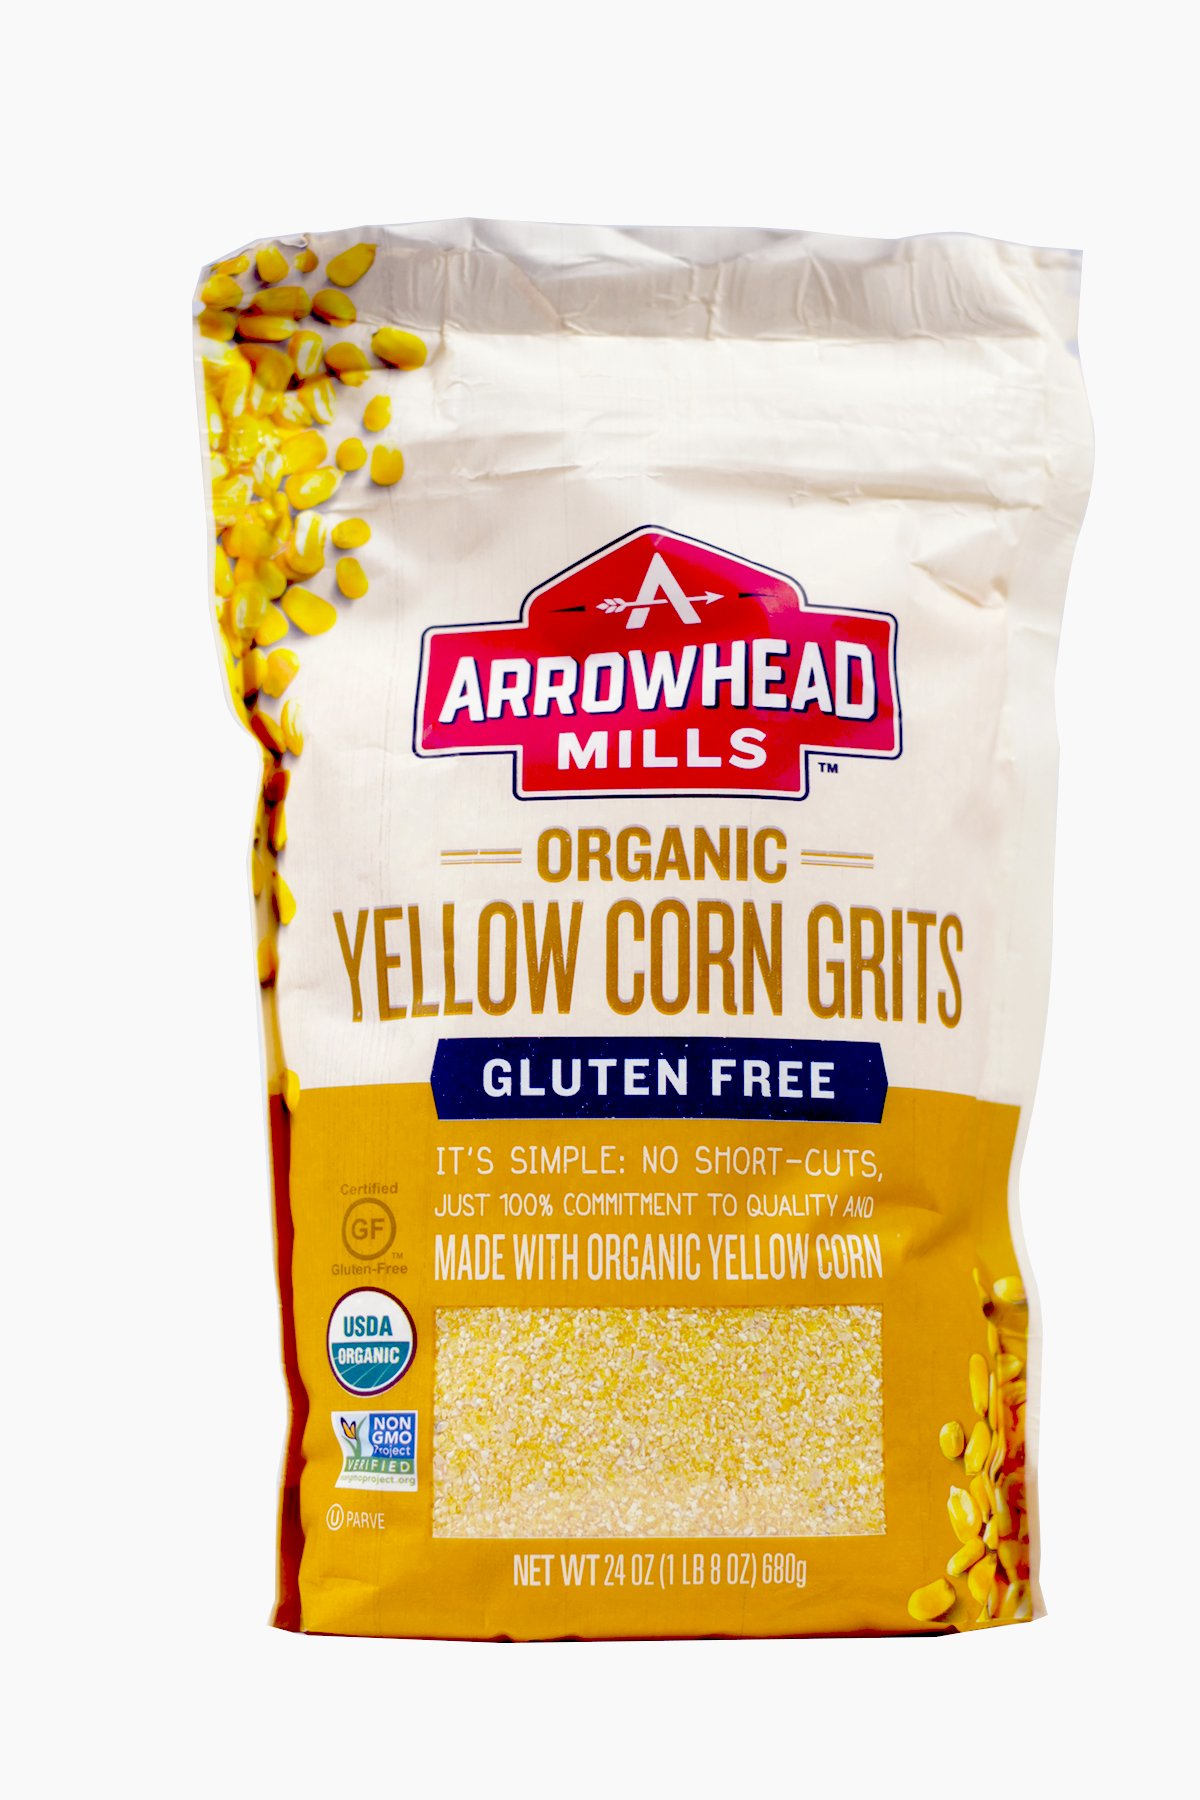 ARROWHEAD MILLS Organic Yellow Corn Grits, 24 OZ